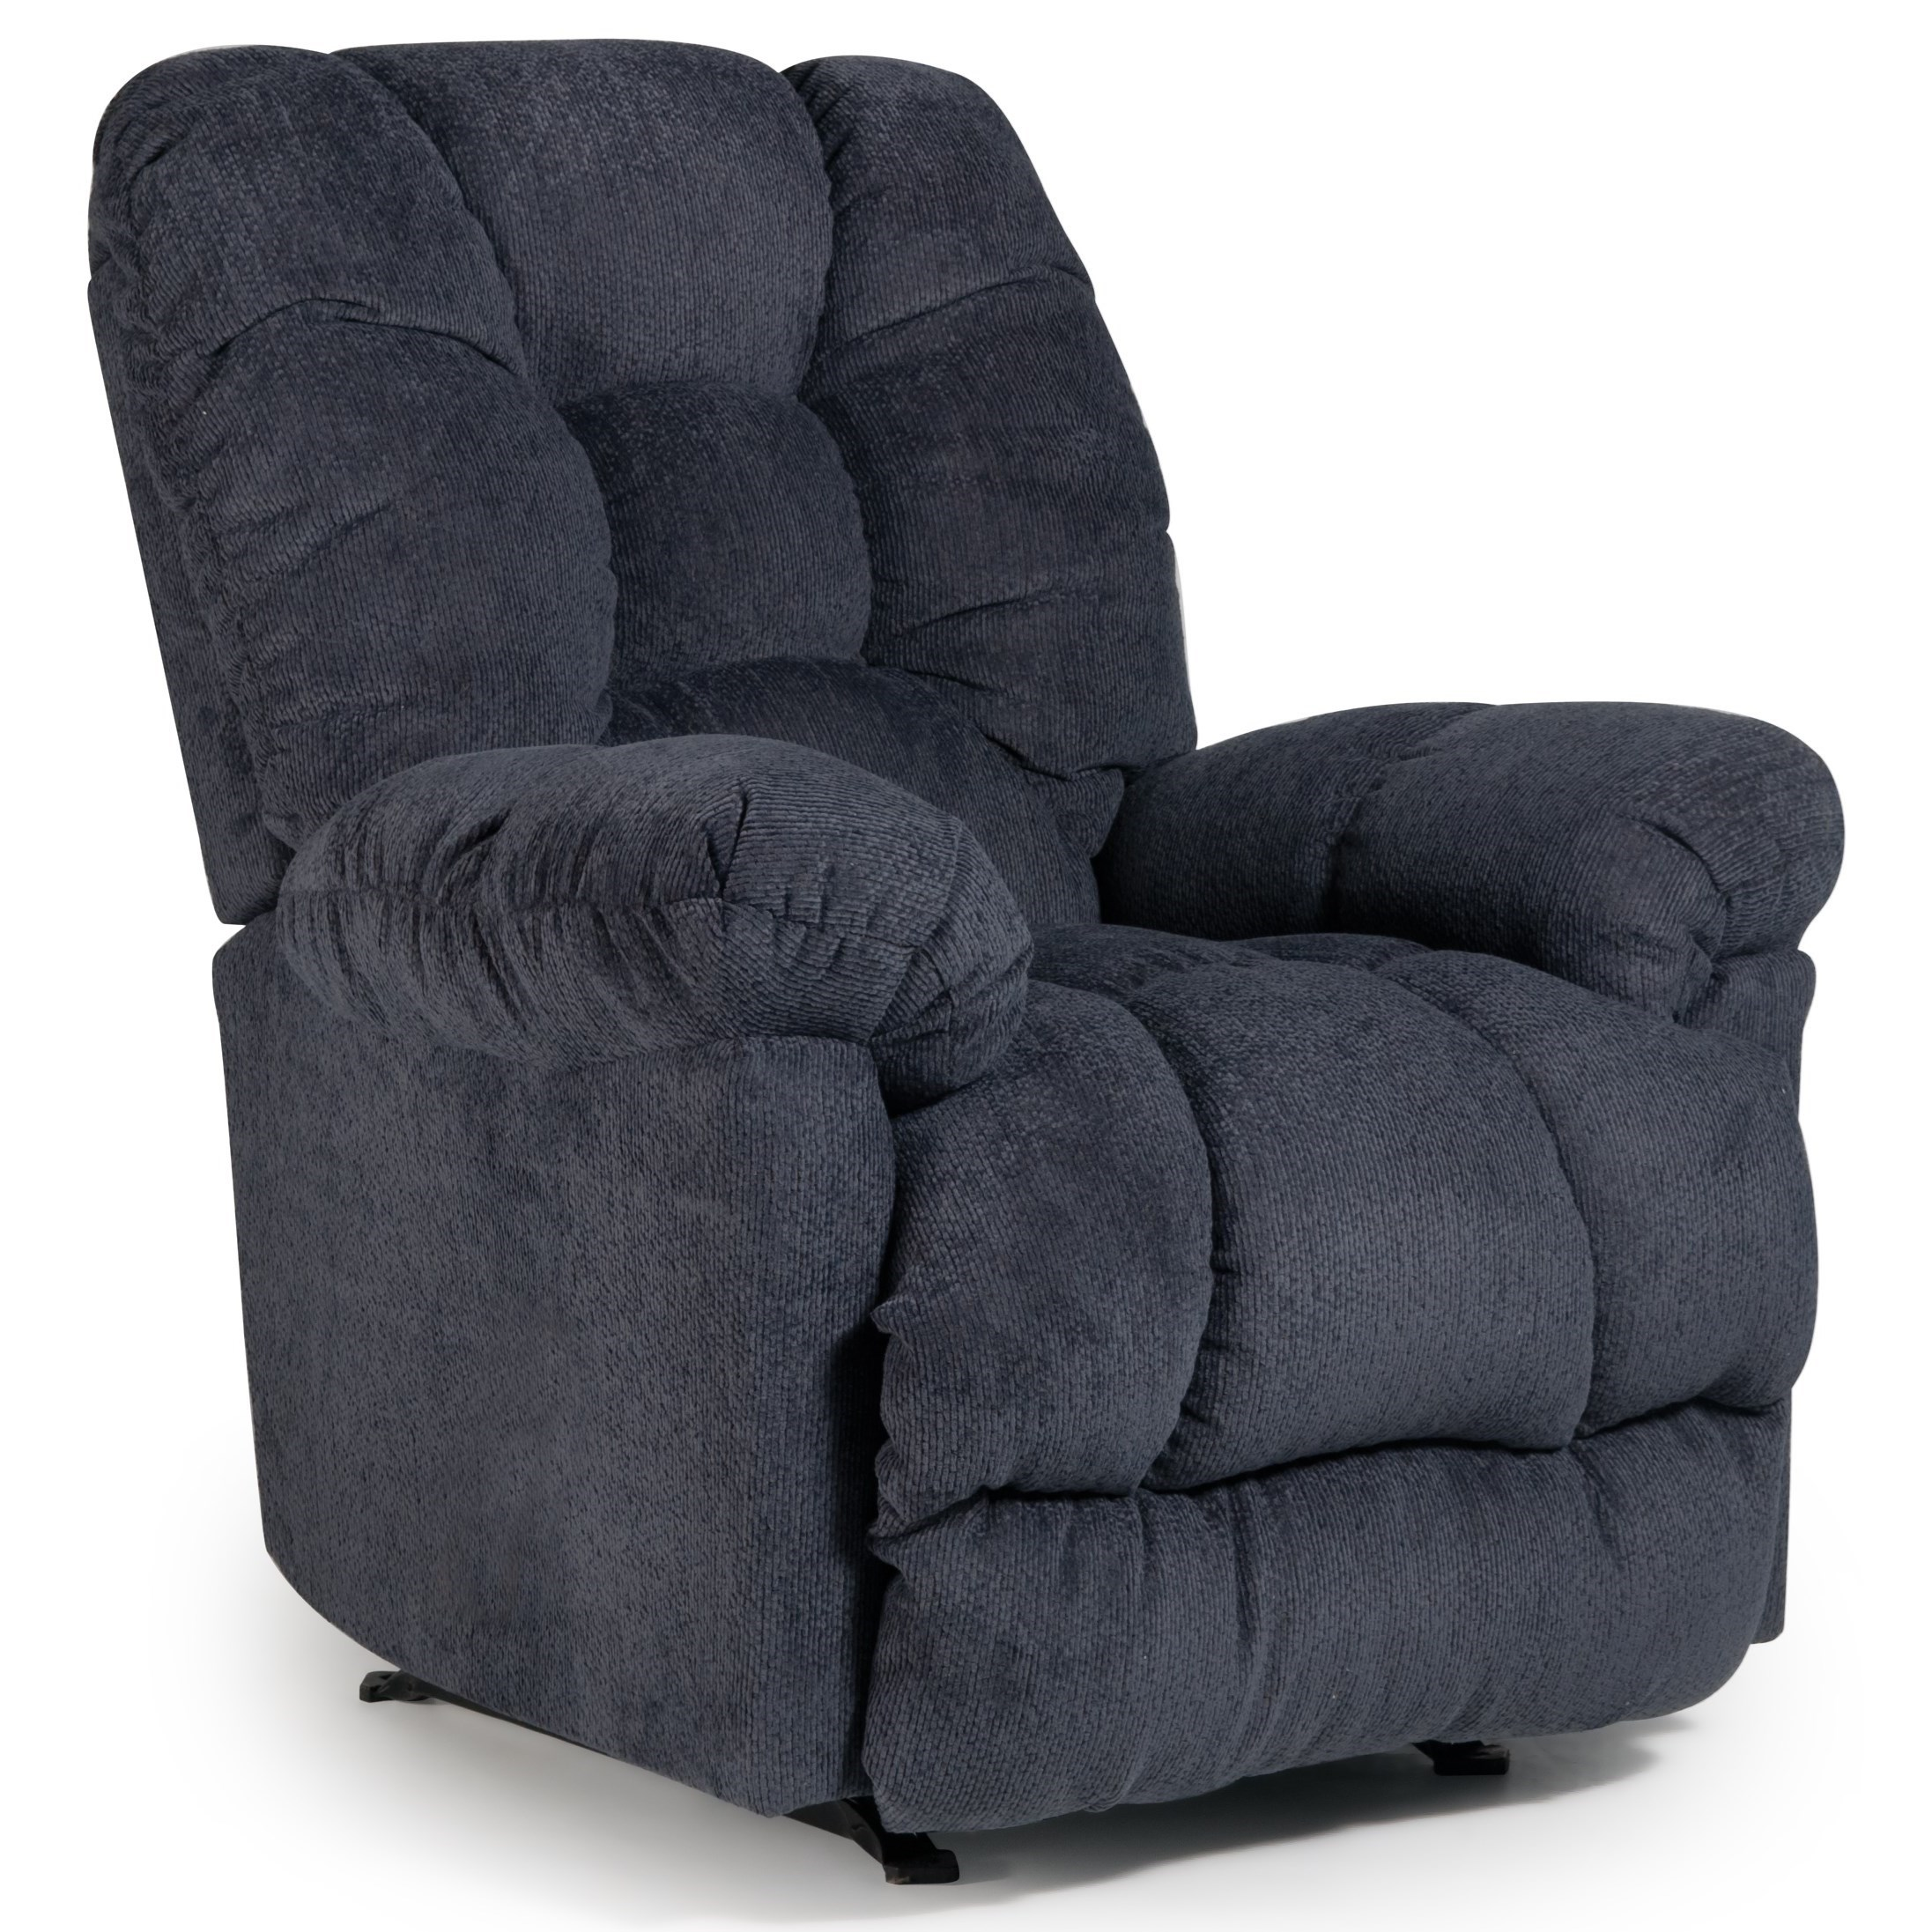 Orlando Power Swivel Glider Recliner